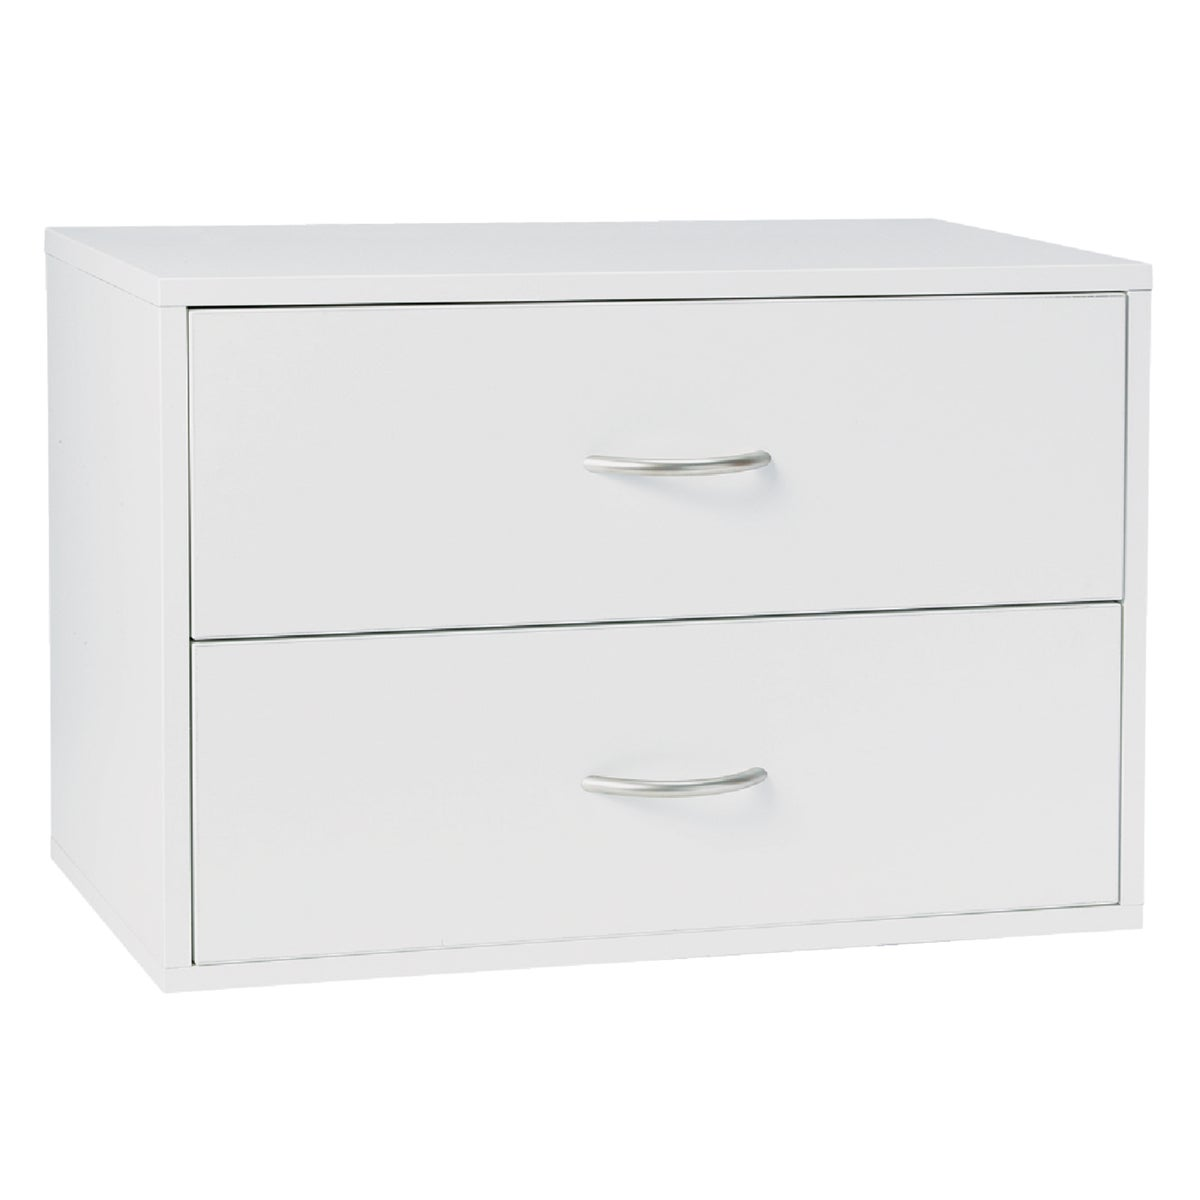 WHITE 2-DRAWER O-BOX